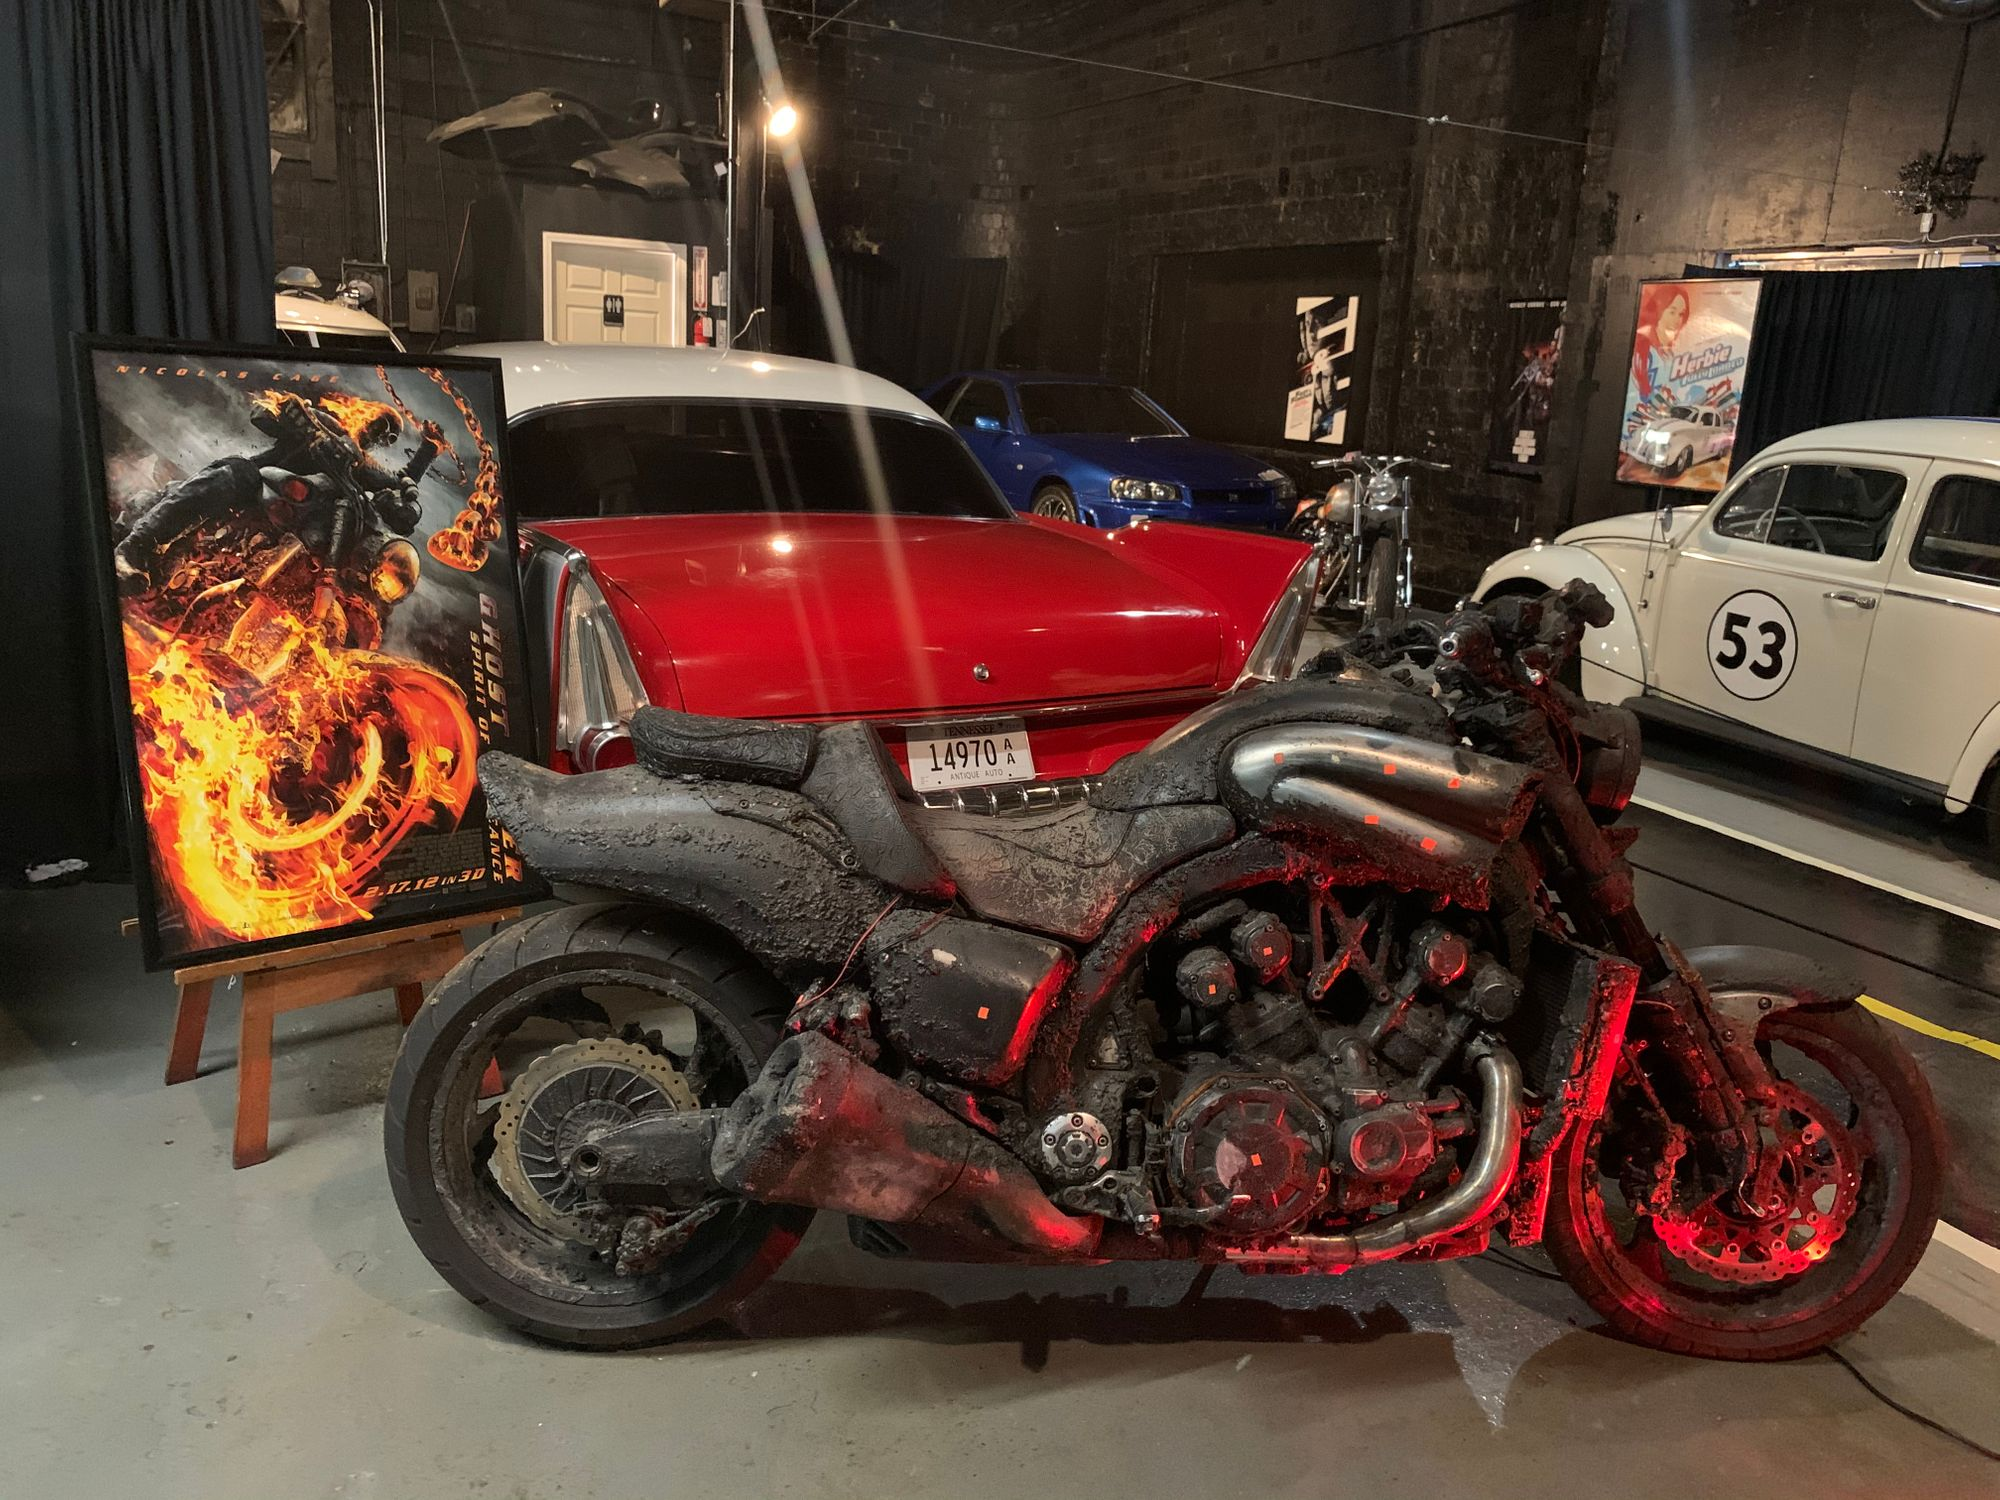 "<img src=""ghost-rider.jpg"" alt=""Original motorcycle from Ghost Rider"">"